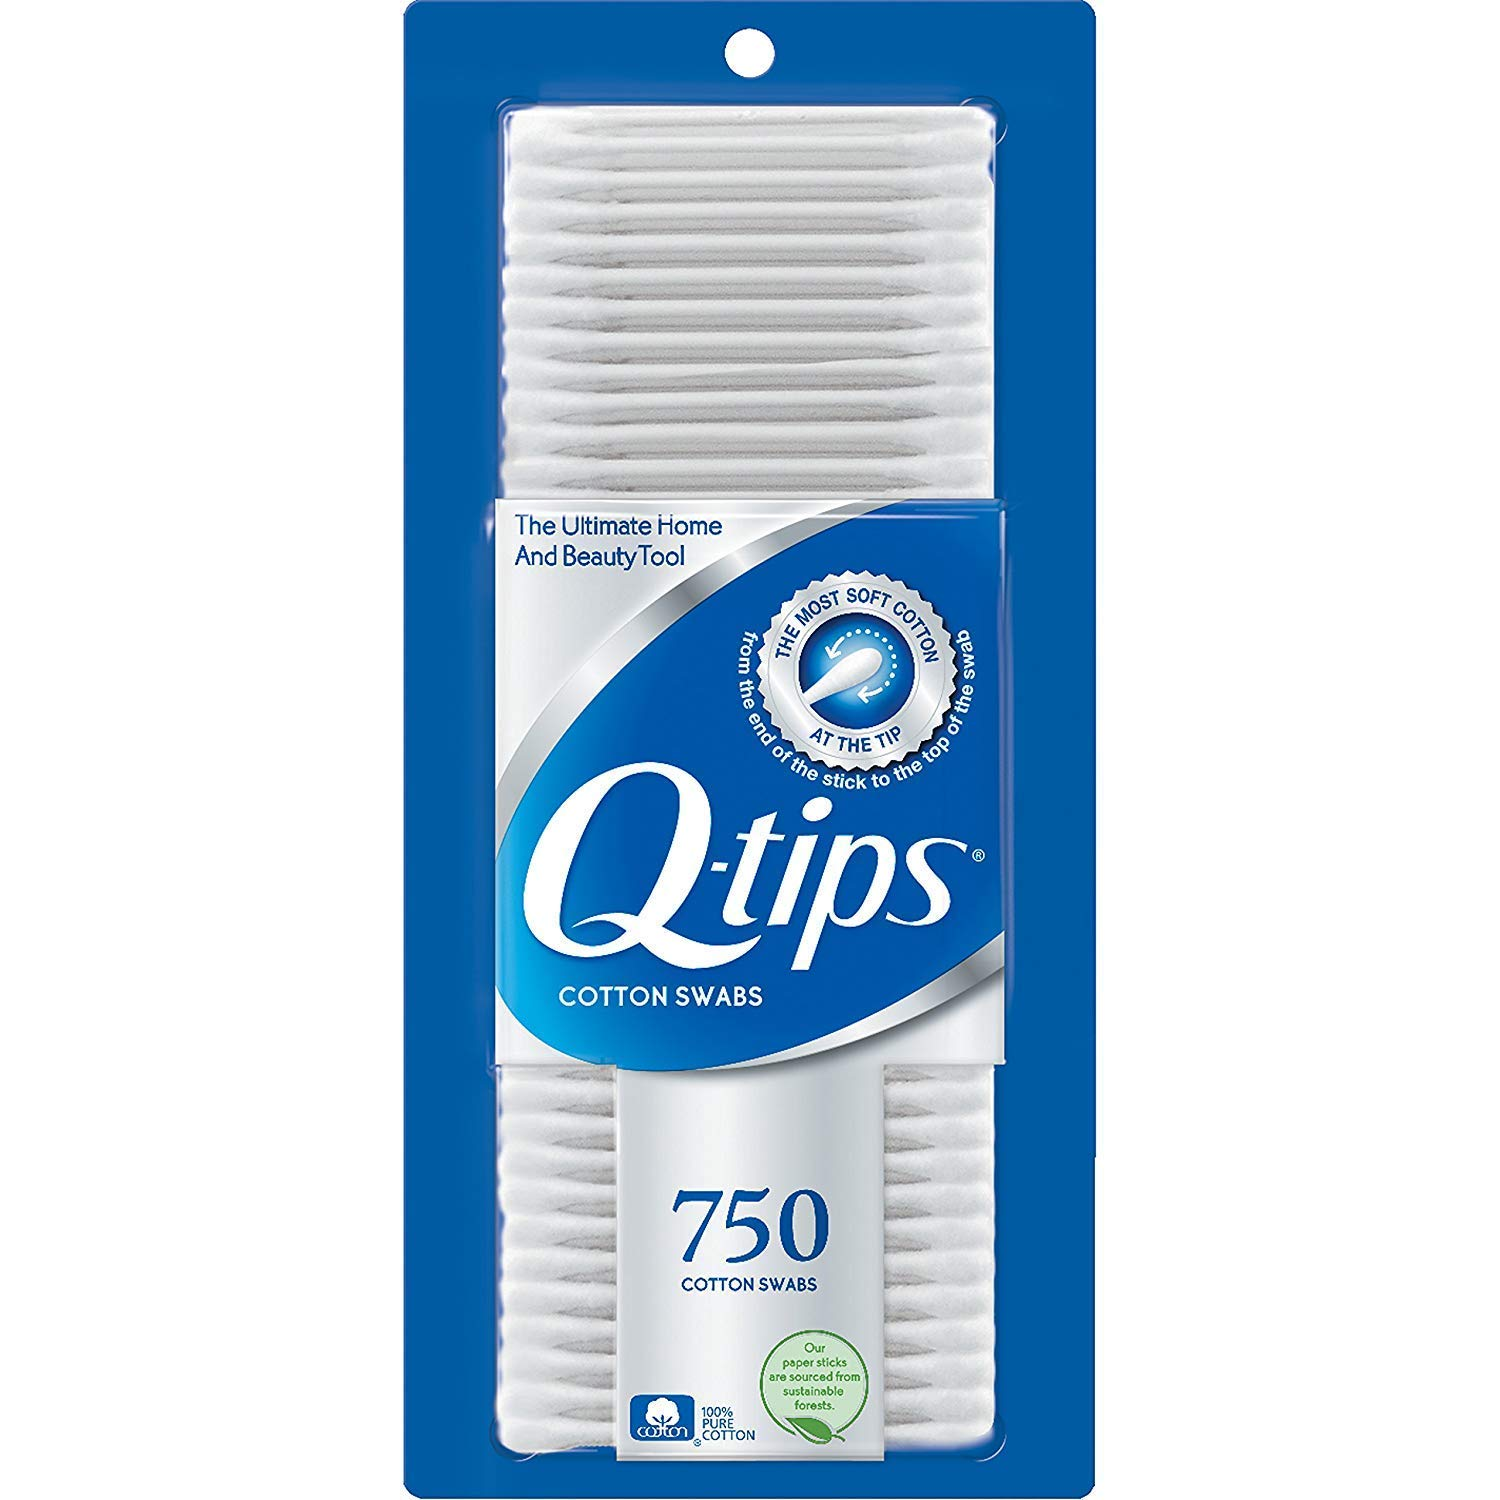 Q, Tips Cotton Swabs, 750 ct, 2 Pack